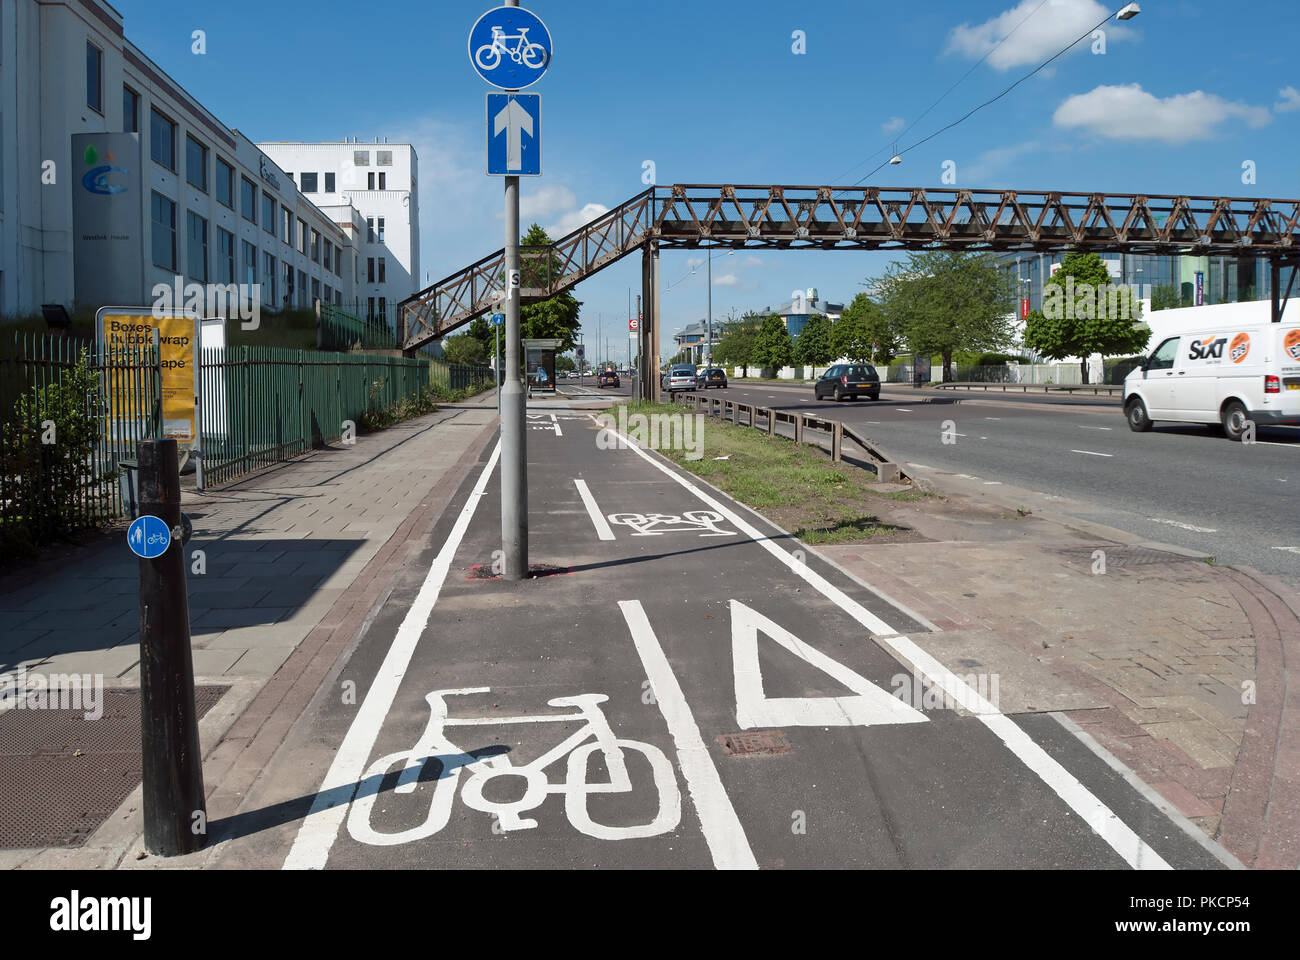 markings for a segregated two-way cycle route on the great west road, brentford, middlesex, england - Stock Image